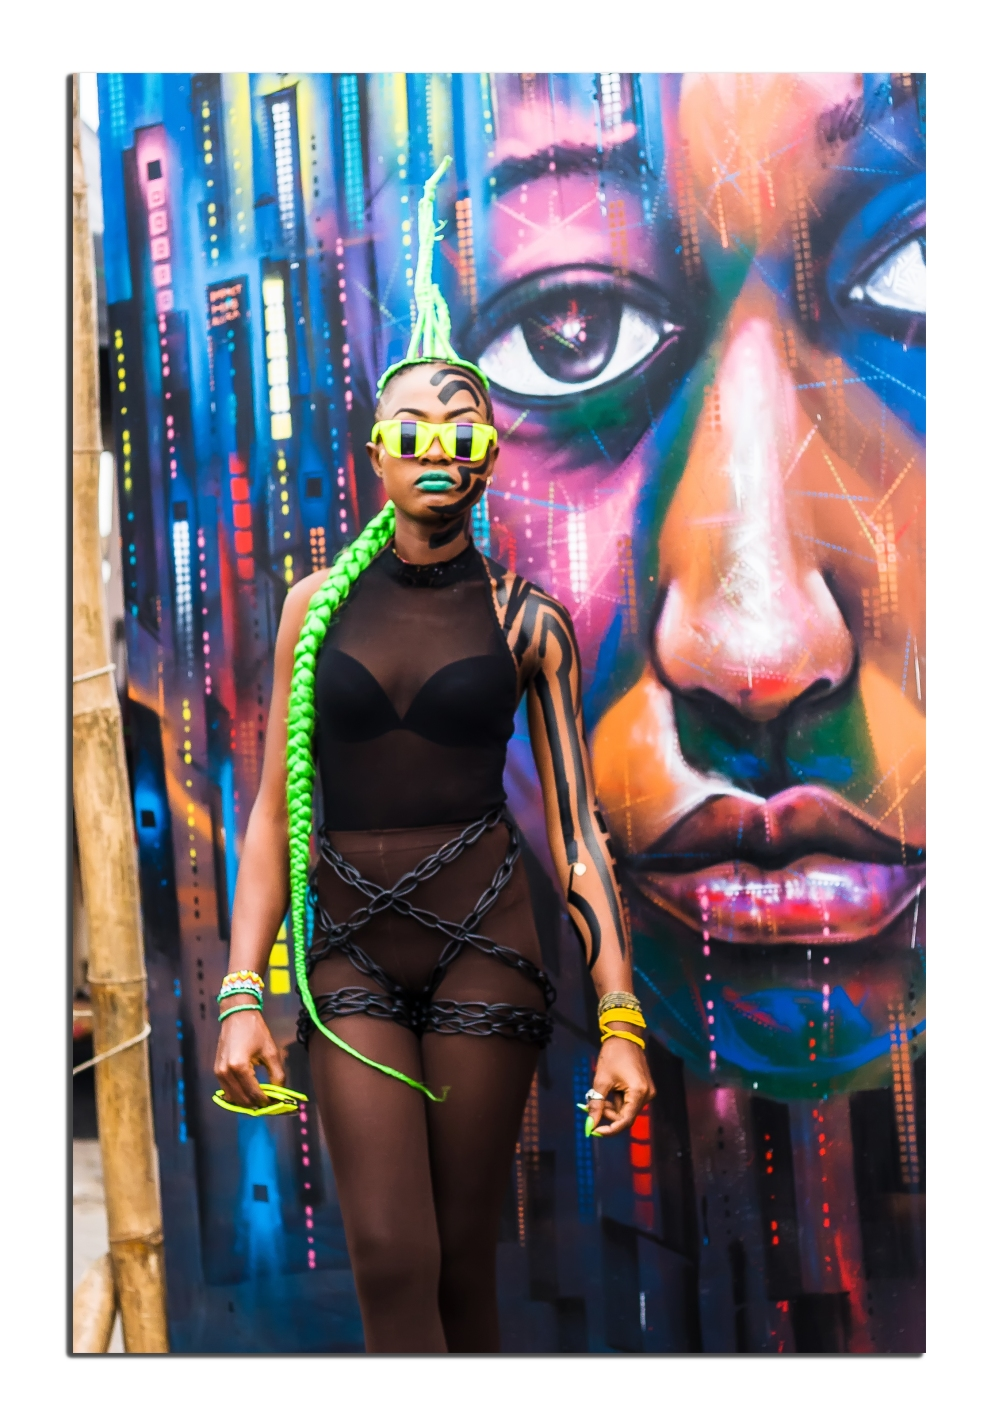 The Chale Wote Street Art Festival picture